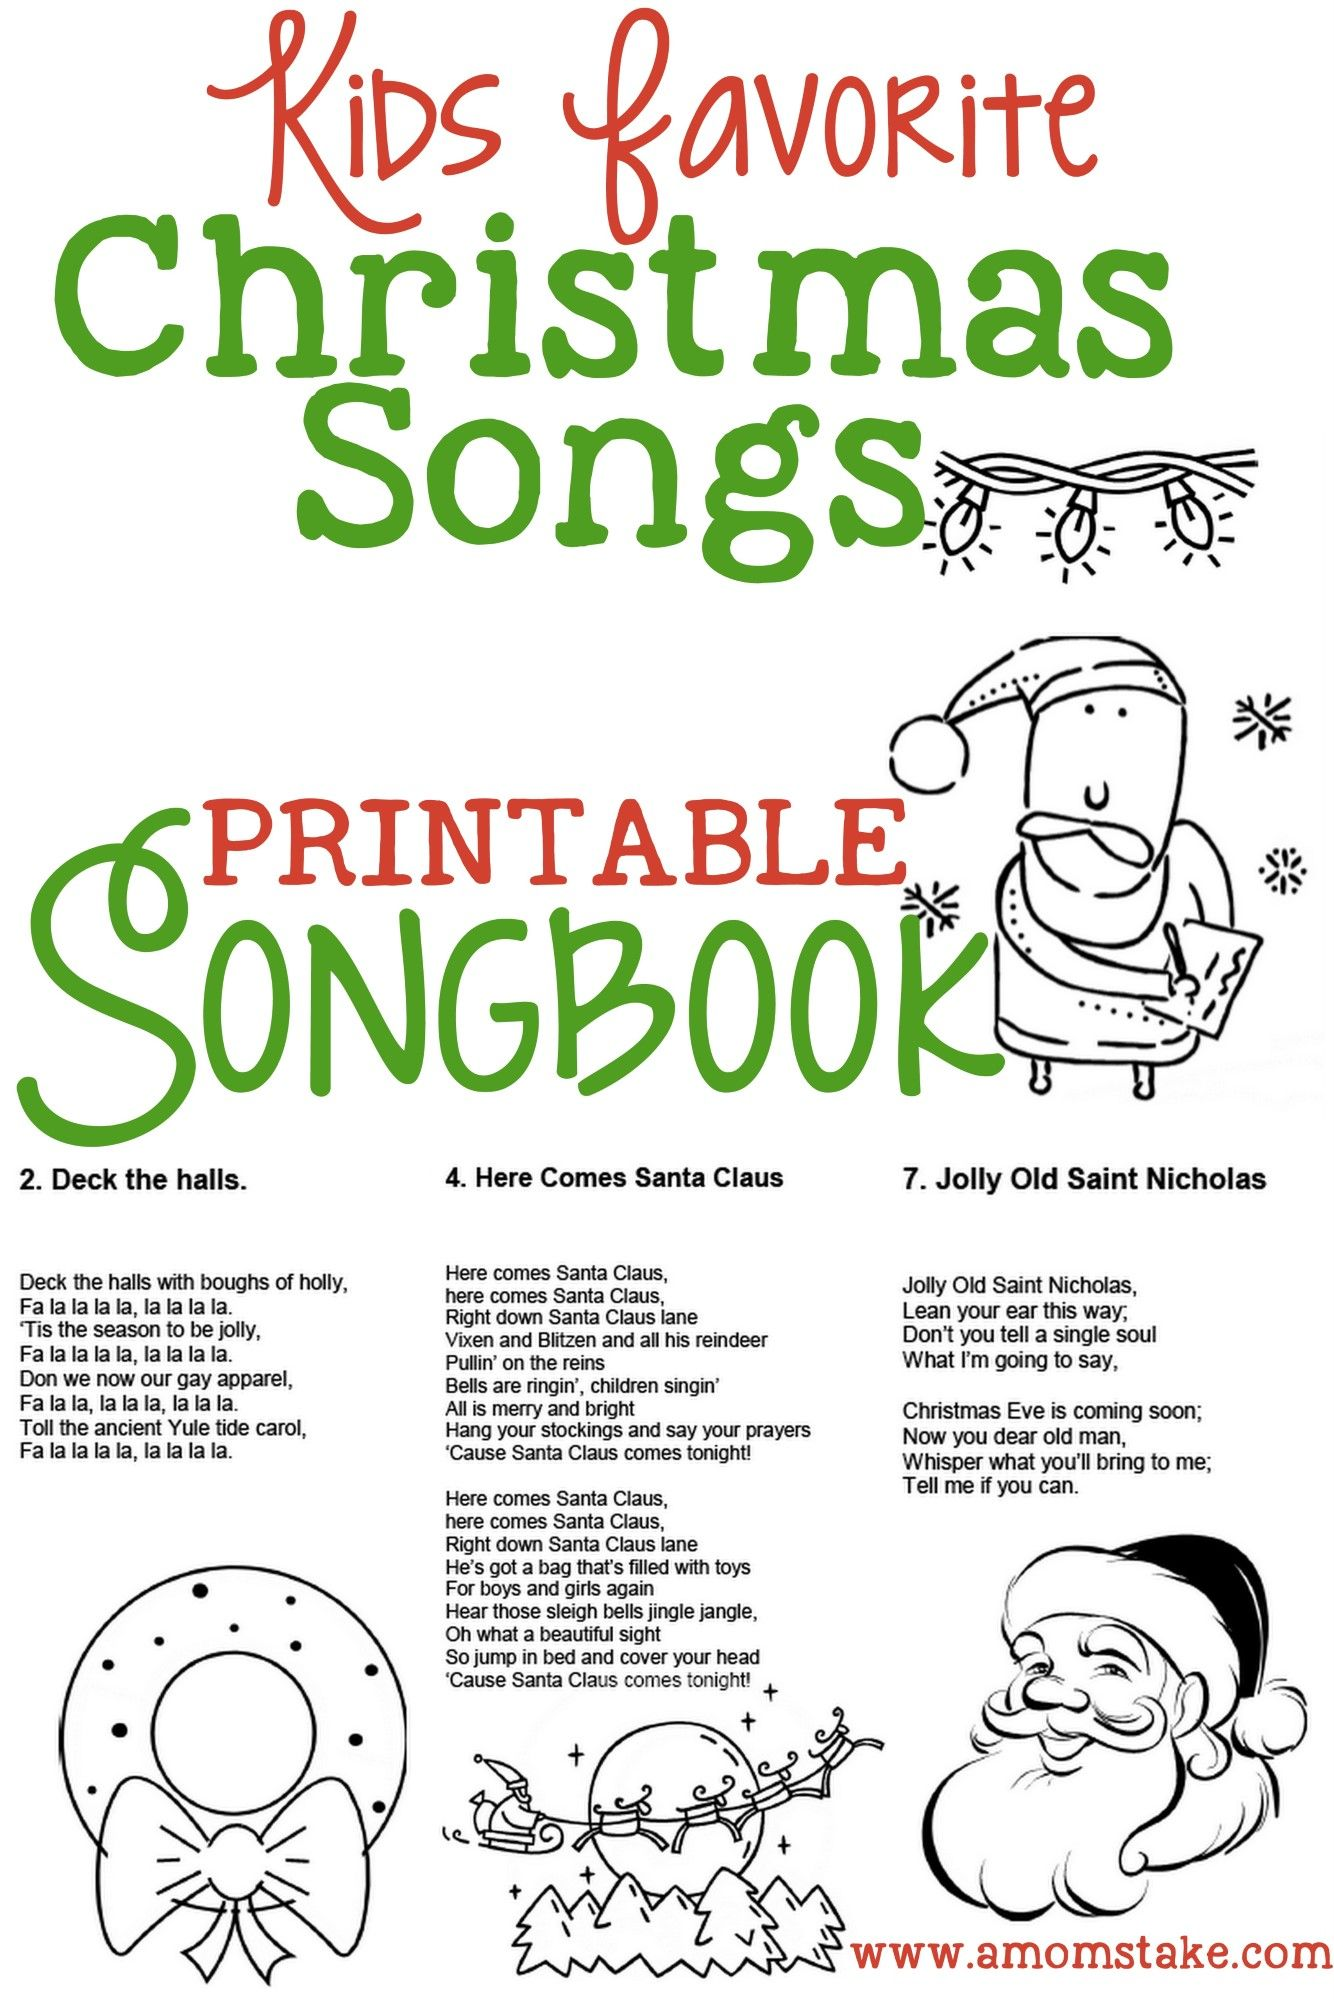 Christmas Songs for Kids - Free Printable Songbook | Holiday Ideas ...